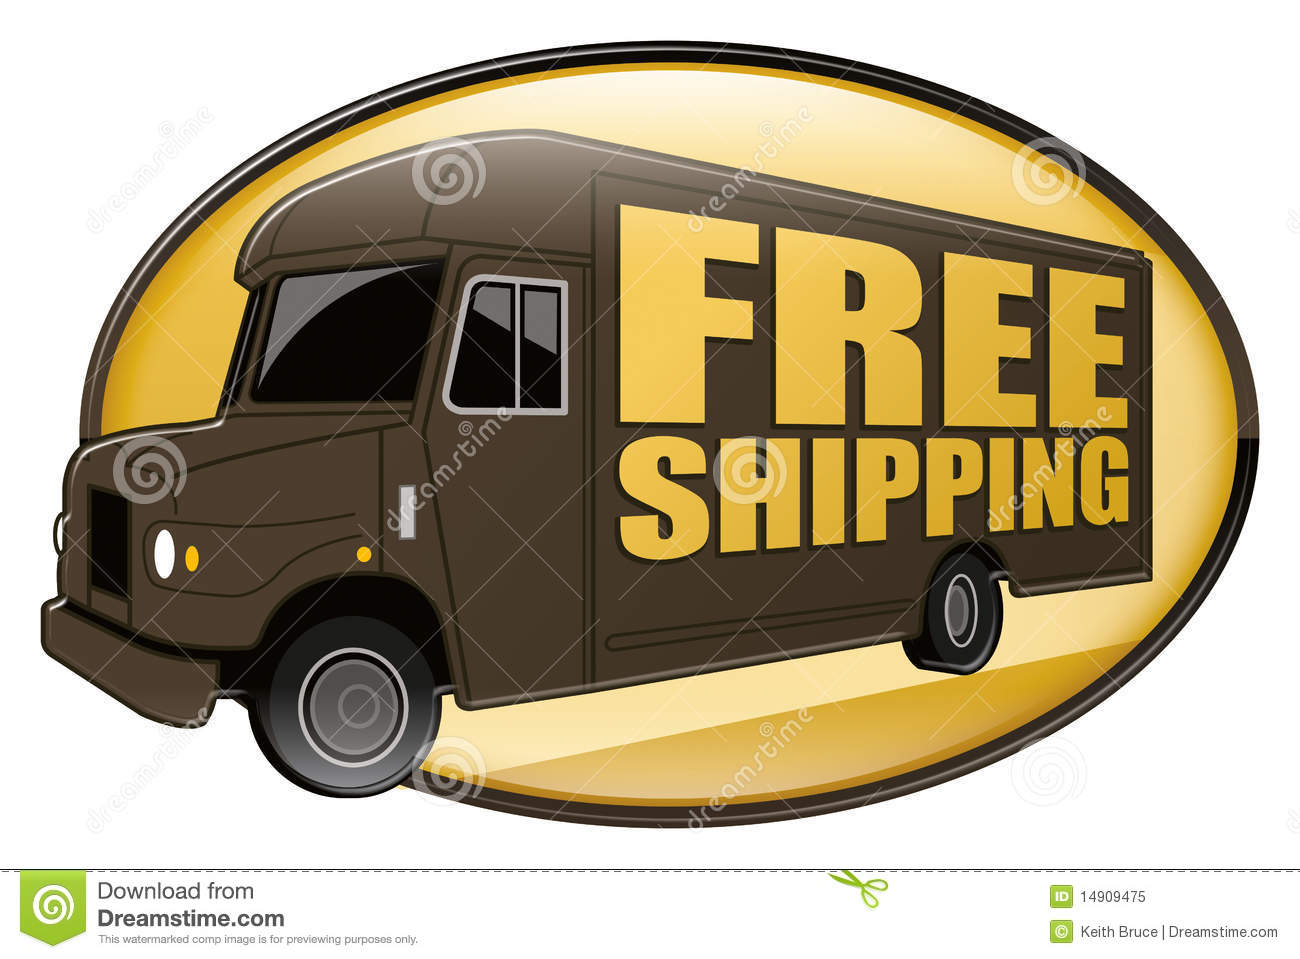 Free Shipping Delivery Truck Brown Royalty Free Stock Photo - Image: 14909475  Free Shipping D...